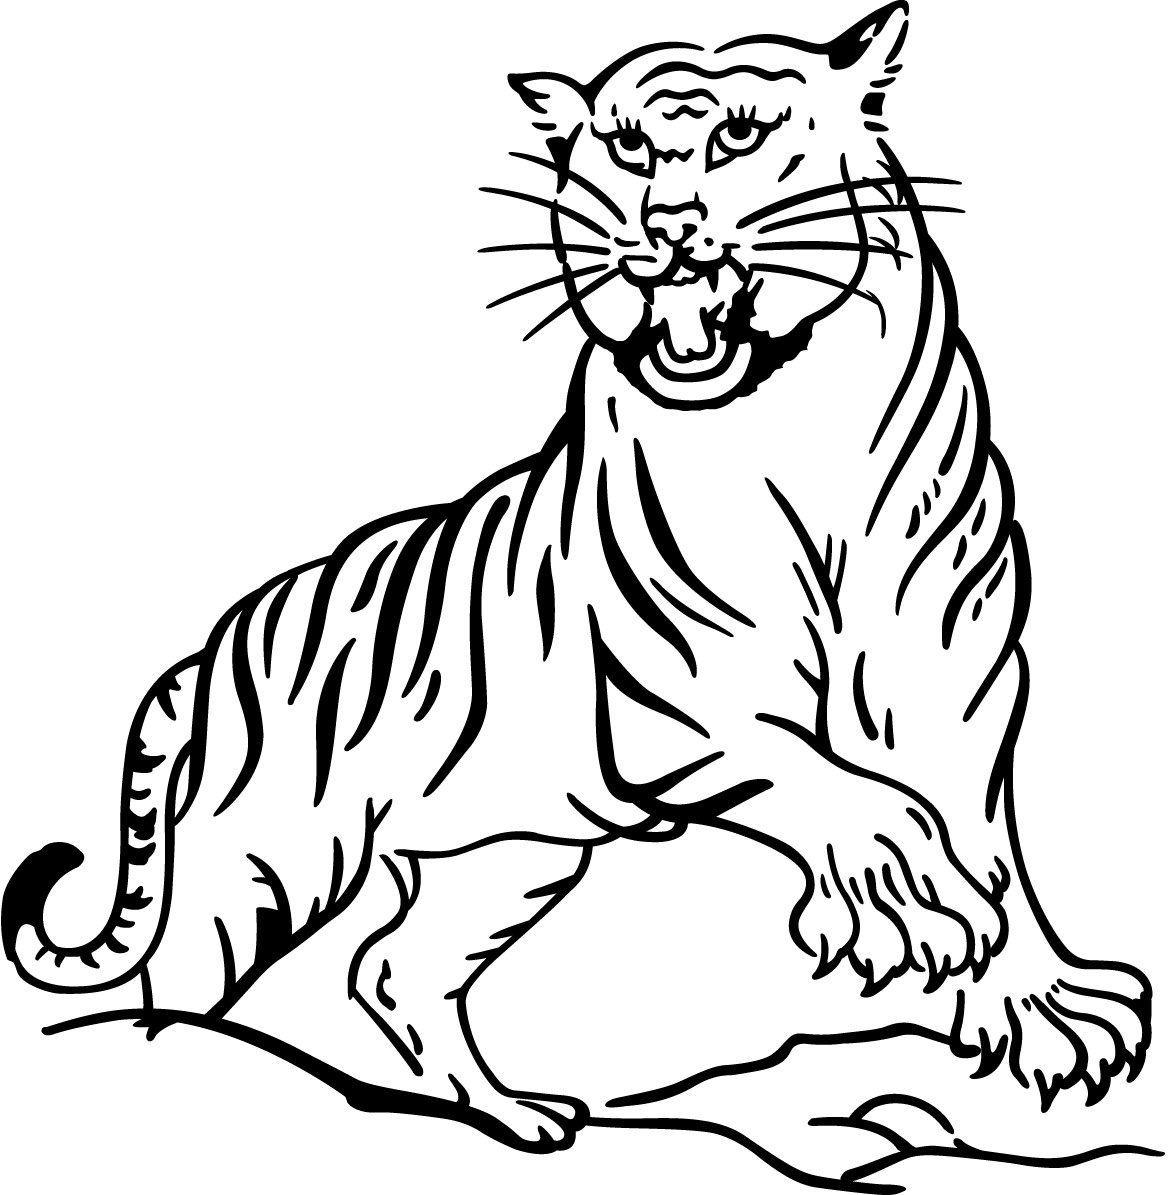 printable tiger coloring pages free printable tiger coloring pages for kids tiger printable coloring pages